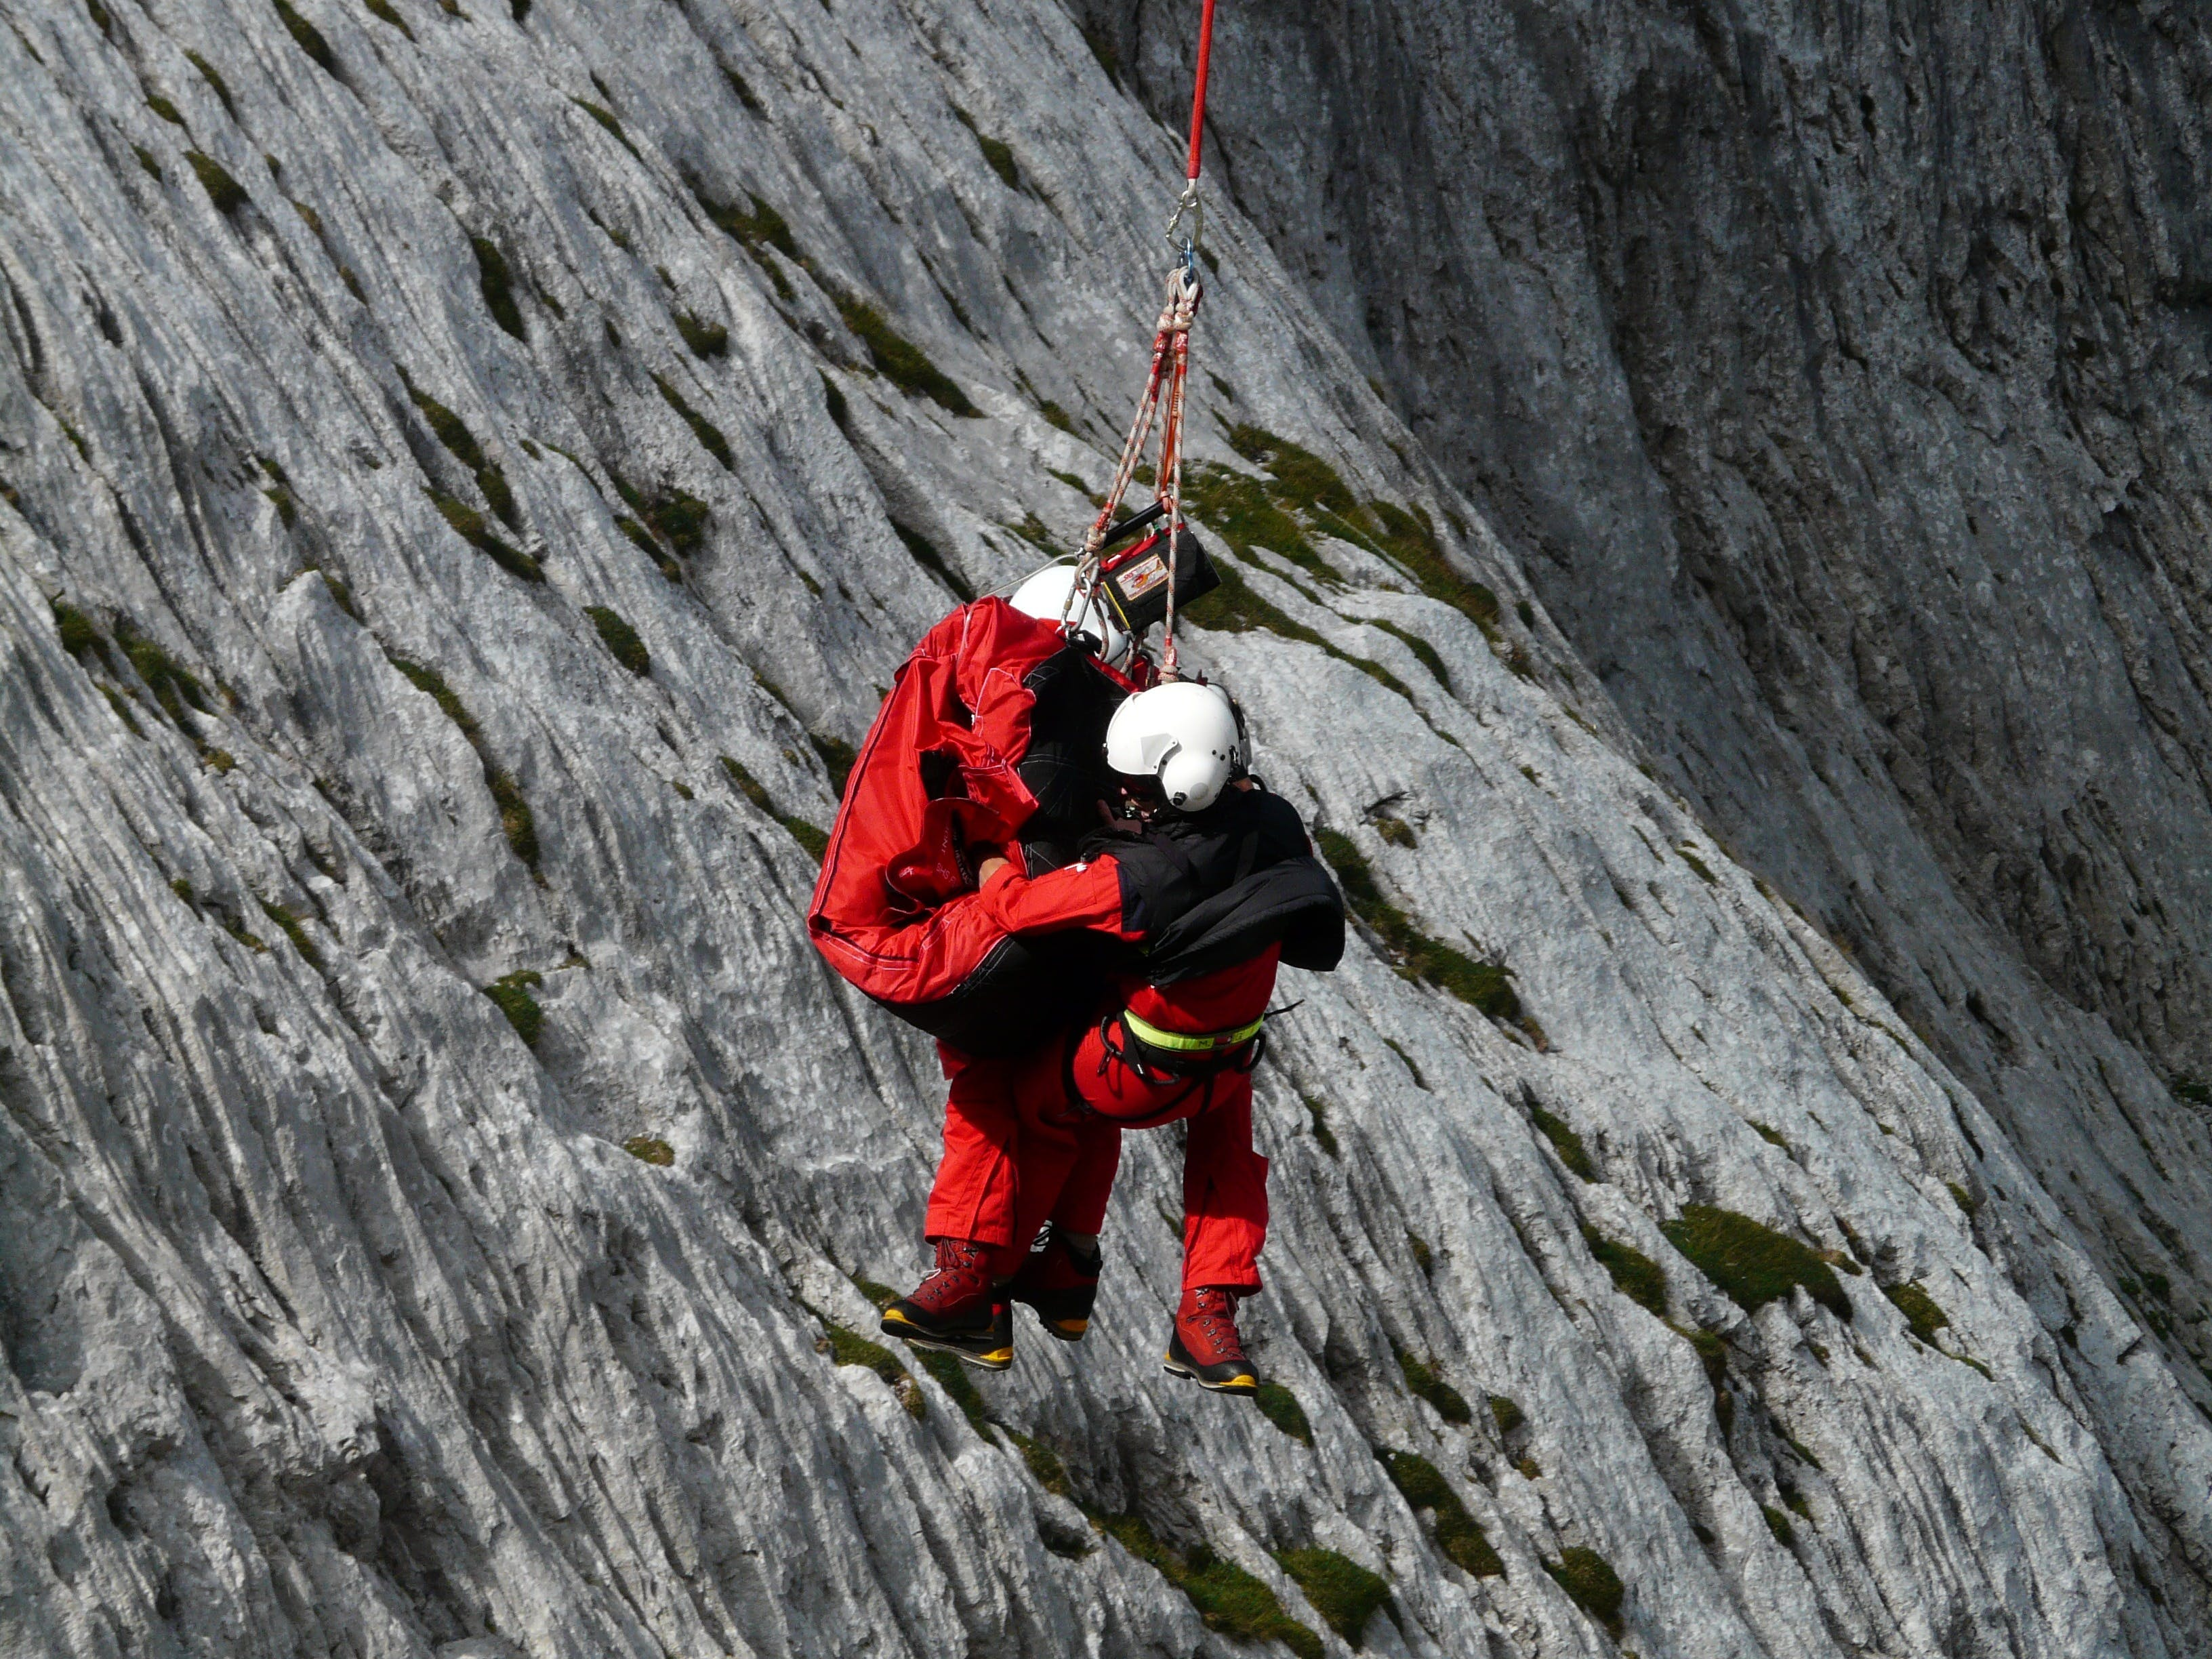 Two People Rappelling Near Grey Rocks